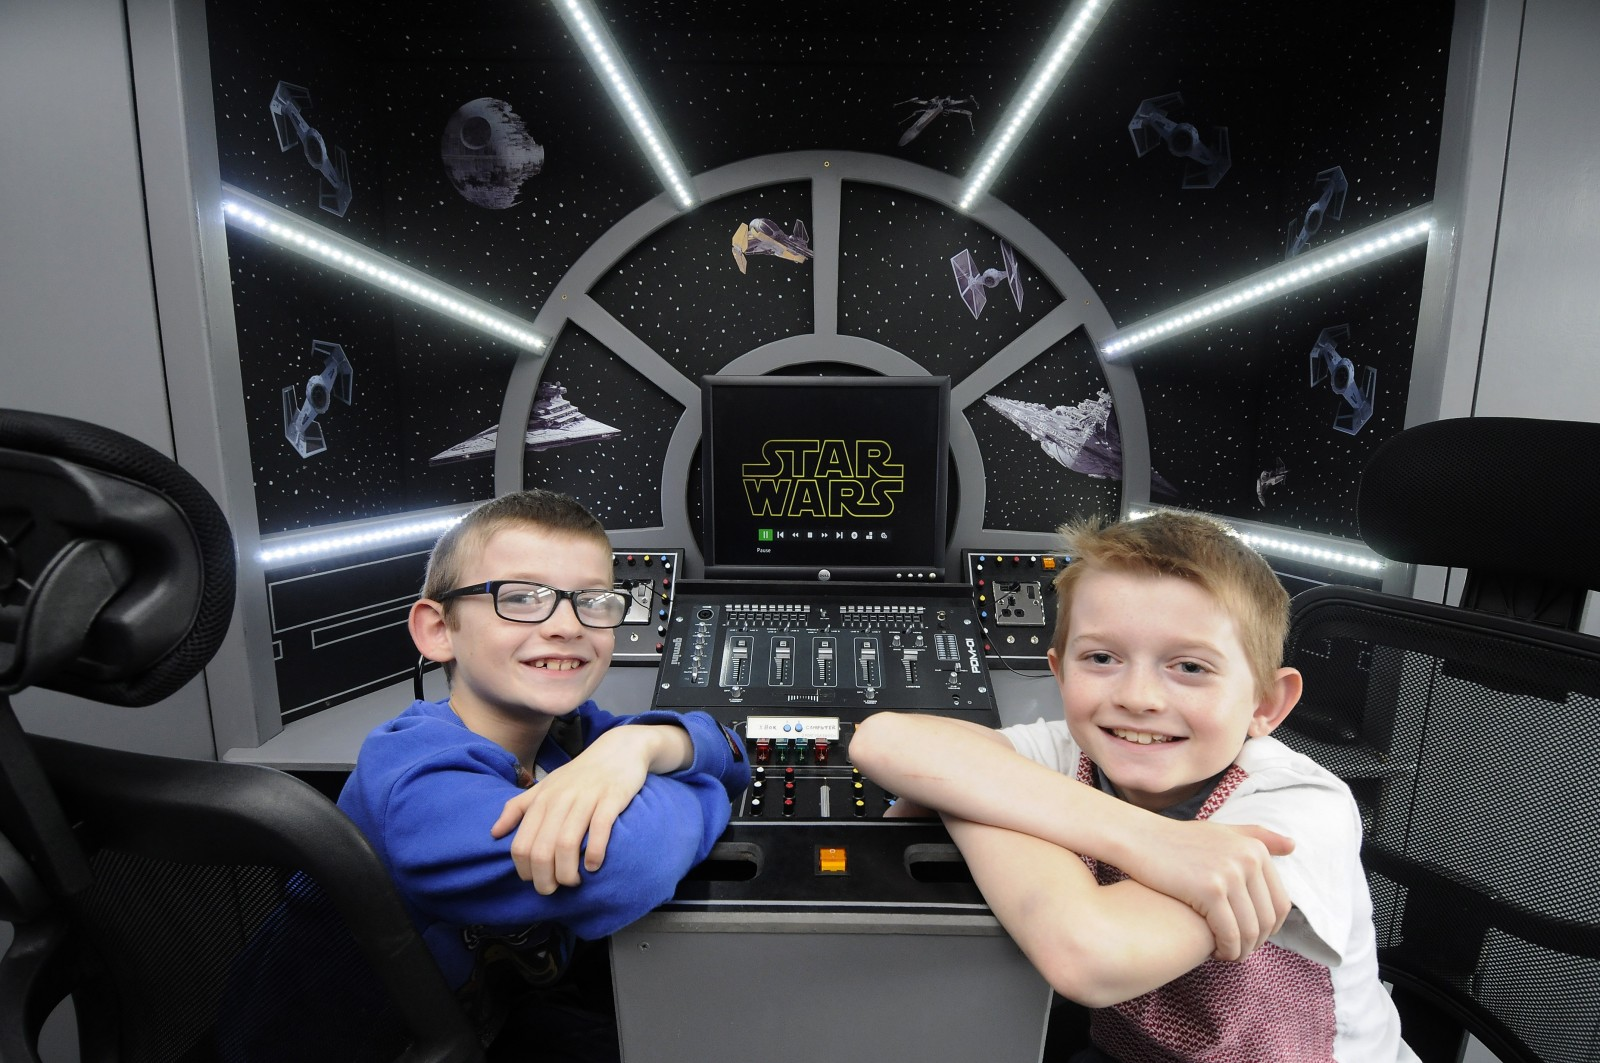 Dad Dave Bonney had built a Millenium Falcon entertainment centre in the bedroom of his two sons George, 8 and Dylan, 9. See Ross Parry Copy RPYSTAR : A devoted dad gave his kids a present that was out of this world - by transforming their room into a life-size replica of a Star Wars SPACESHIP. David Bonney, 47, surprised his Star Wars superfan kids, Dylan, nine, and George, eight, with a new bedroom based on the iconic Millennium Falcon from the hit movie franchise. The father-of-five hid his efforts for a month from his two sons who had no idea their sci-fi fantasies were about to come to life.